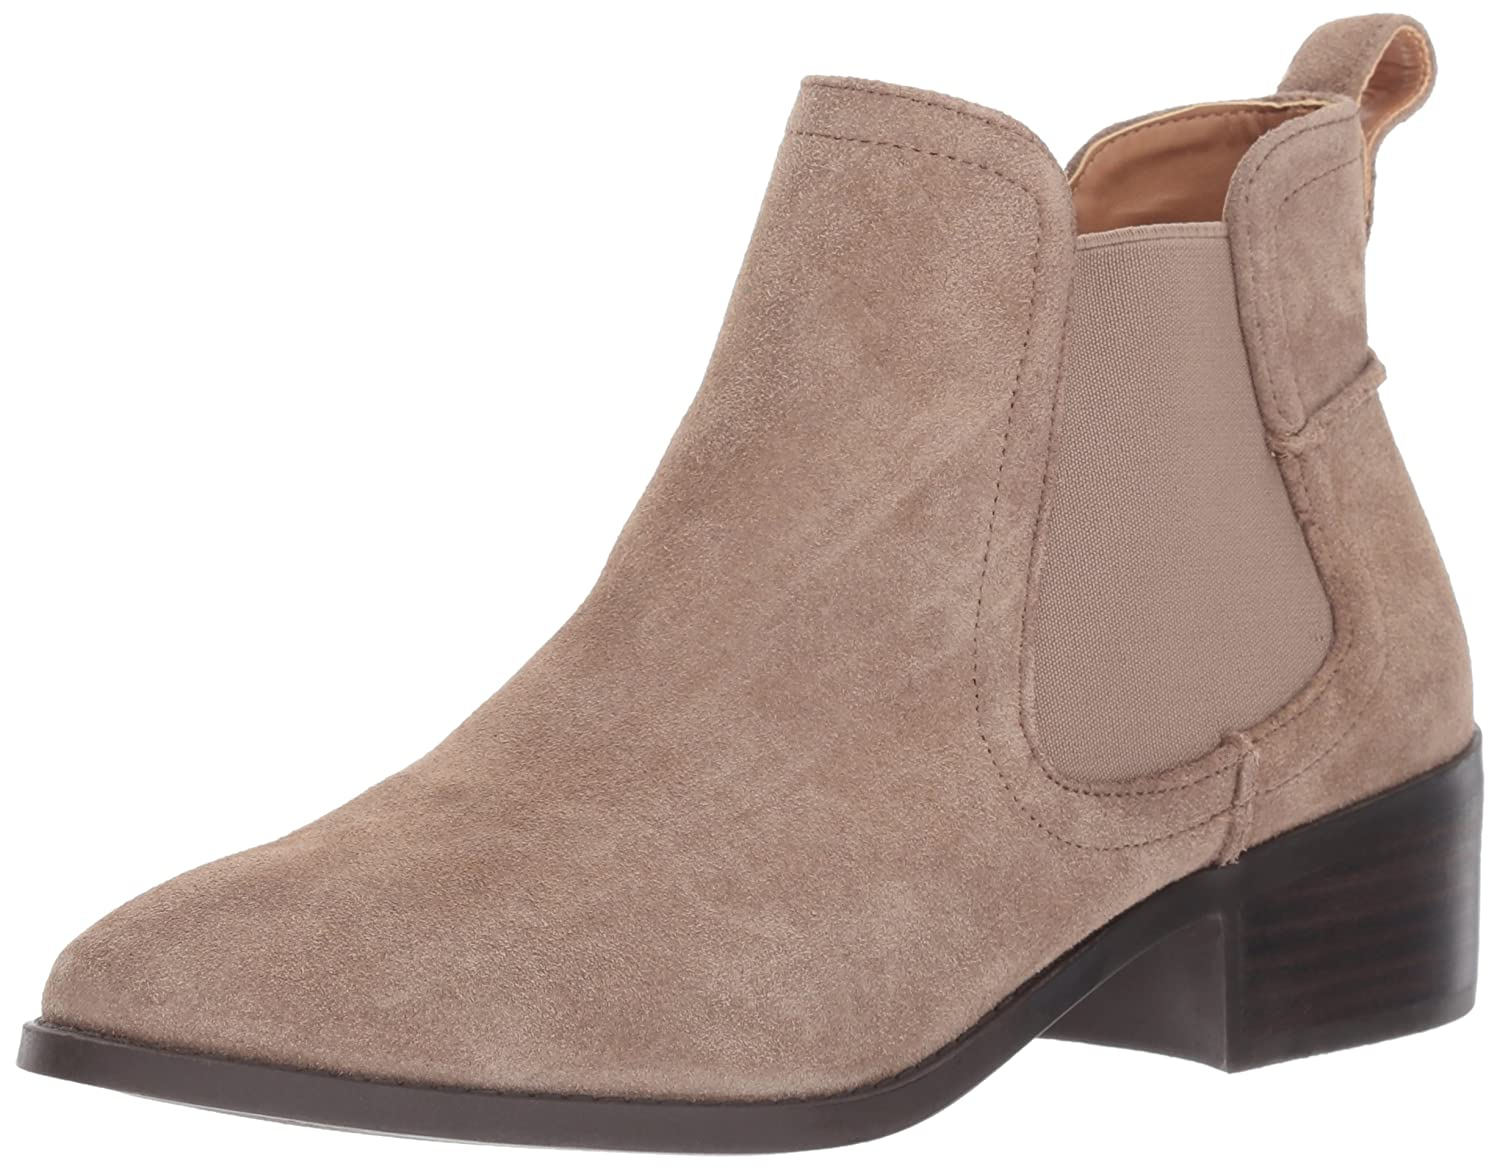 Steve Madden Women's Dicey Ankle Bootie B06XN5BDF7 11 B(M) US|Taupe Suede